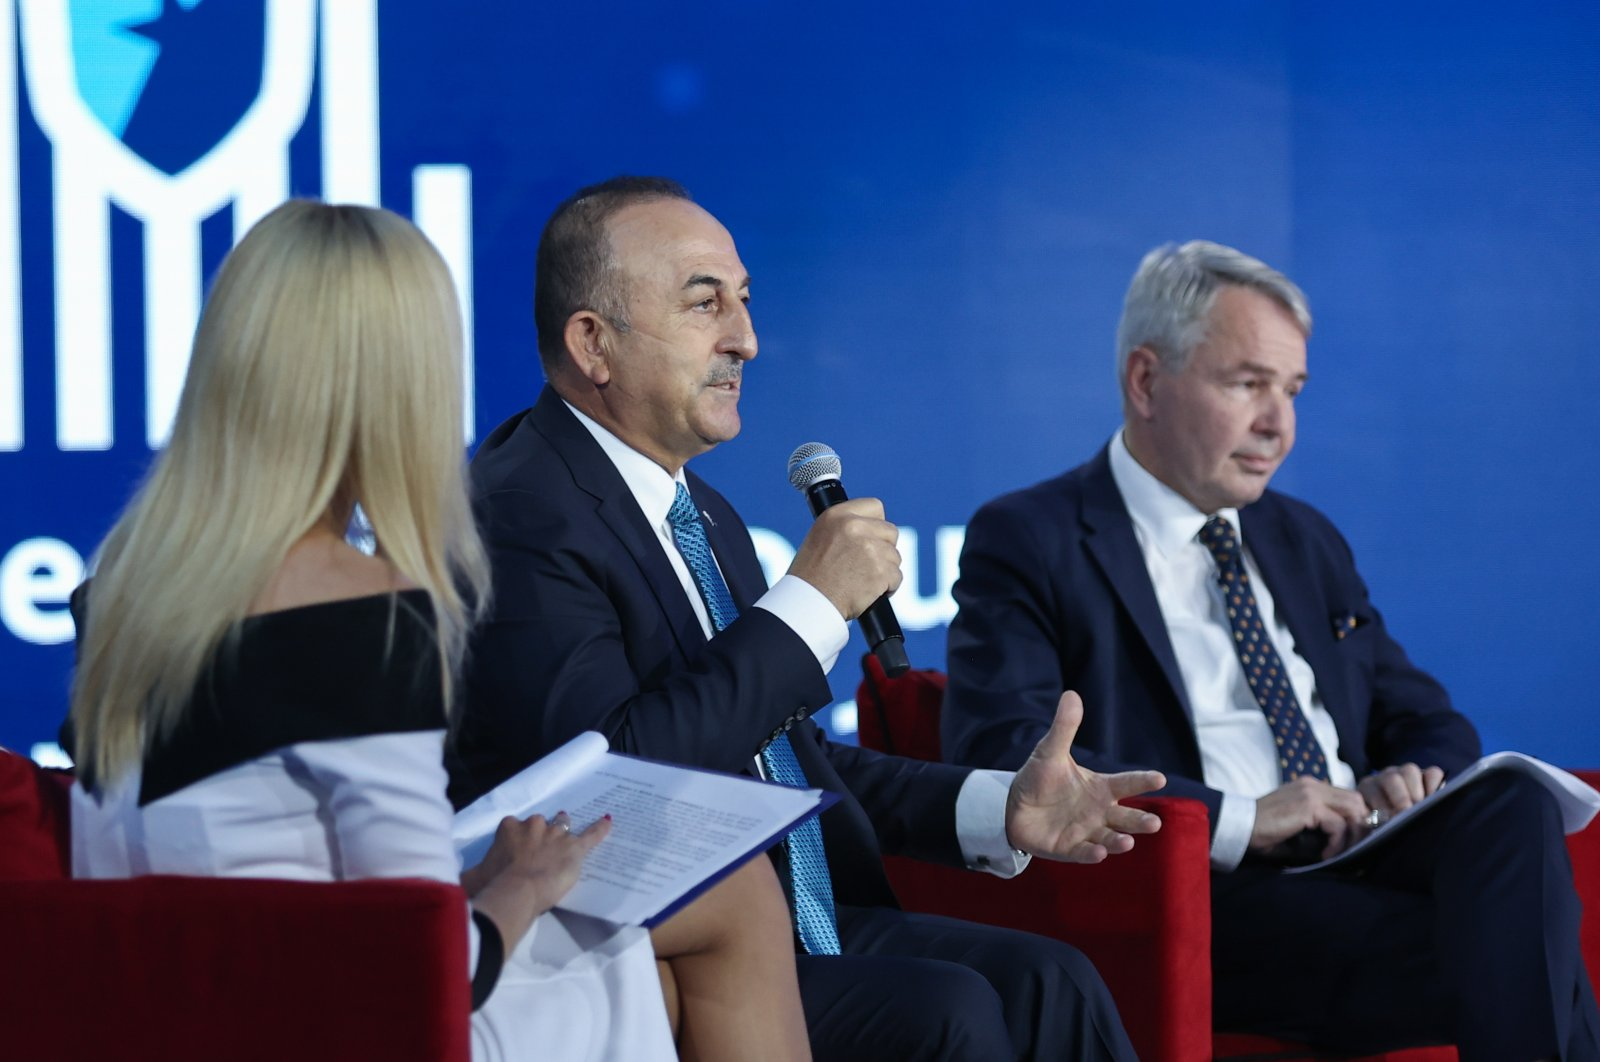 Foreign Minister Mevlüt Çavuşoğlu speaks during the 7th Warsaw Security Forum, Warsaw, Poland, Oct. 5, 2021. (AA Photo)